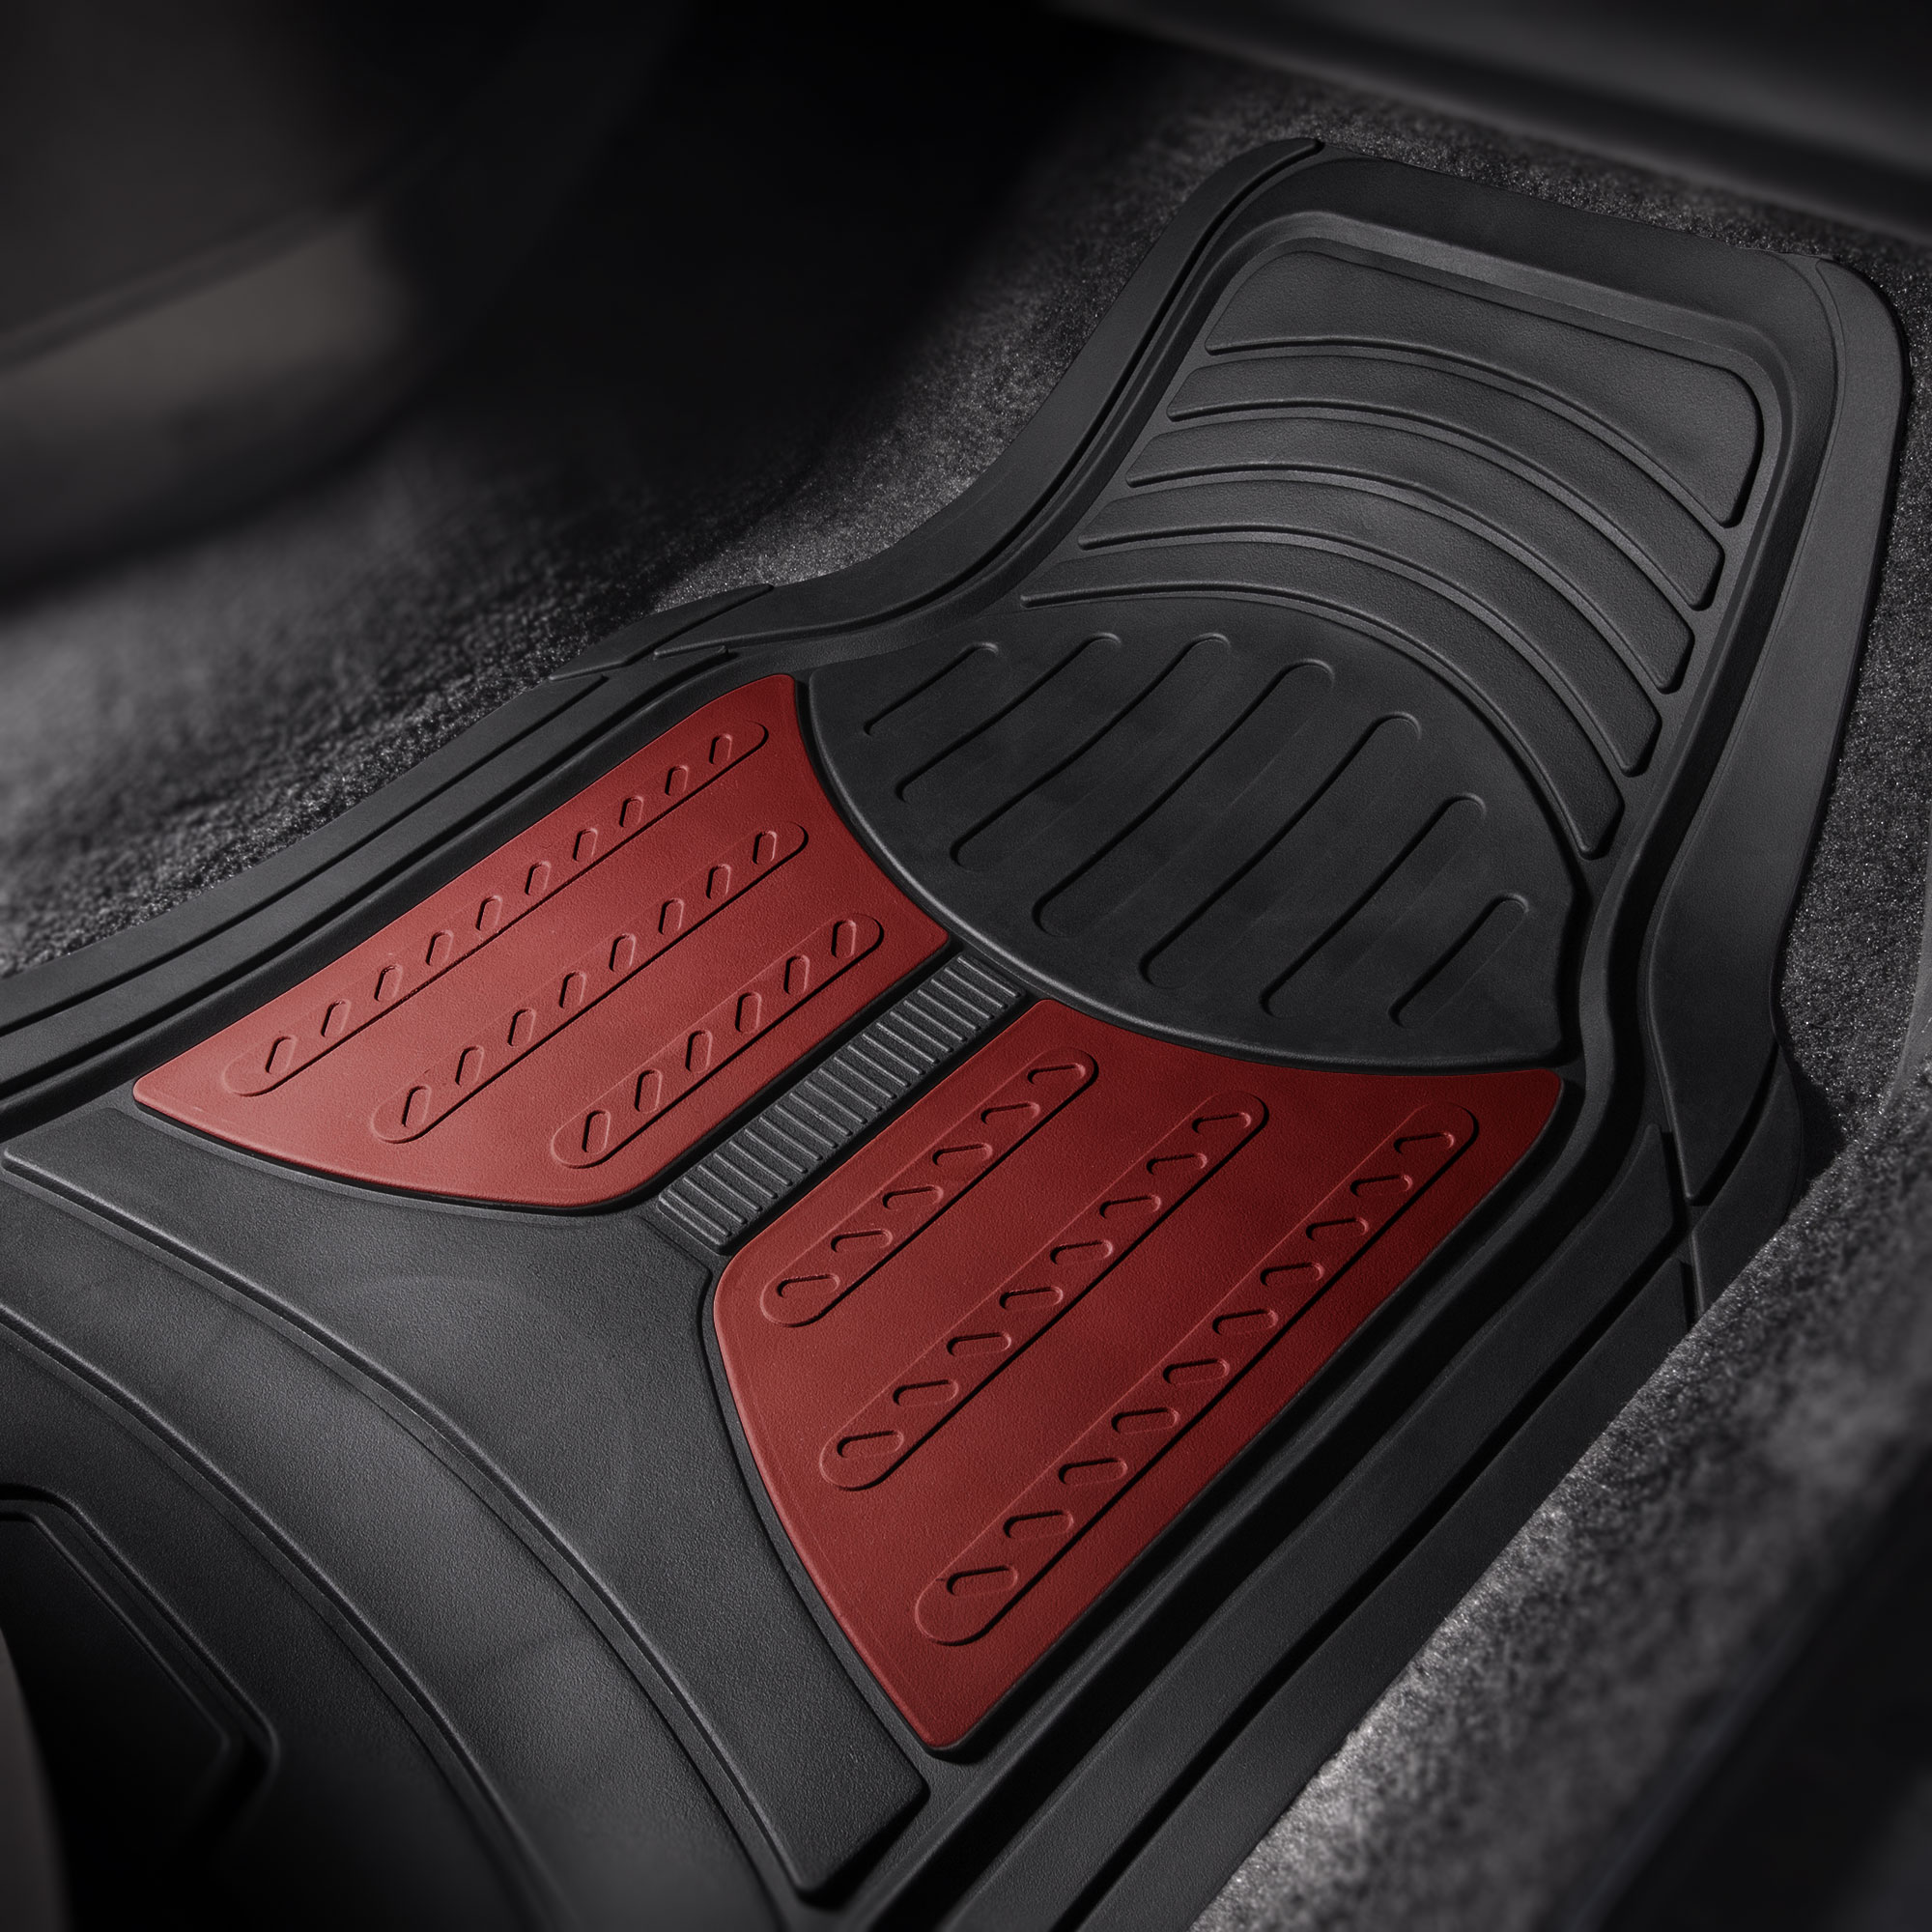 Car-Floor-Mats-for-All-Weather-Rubber-2-Tone-Design-4pc-Set-Heavy-Duty thumbnail 19